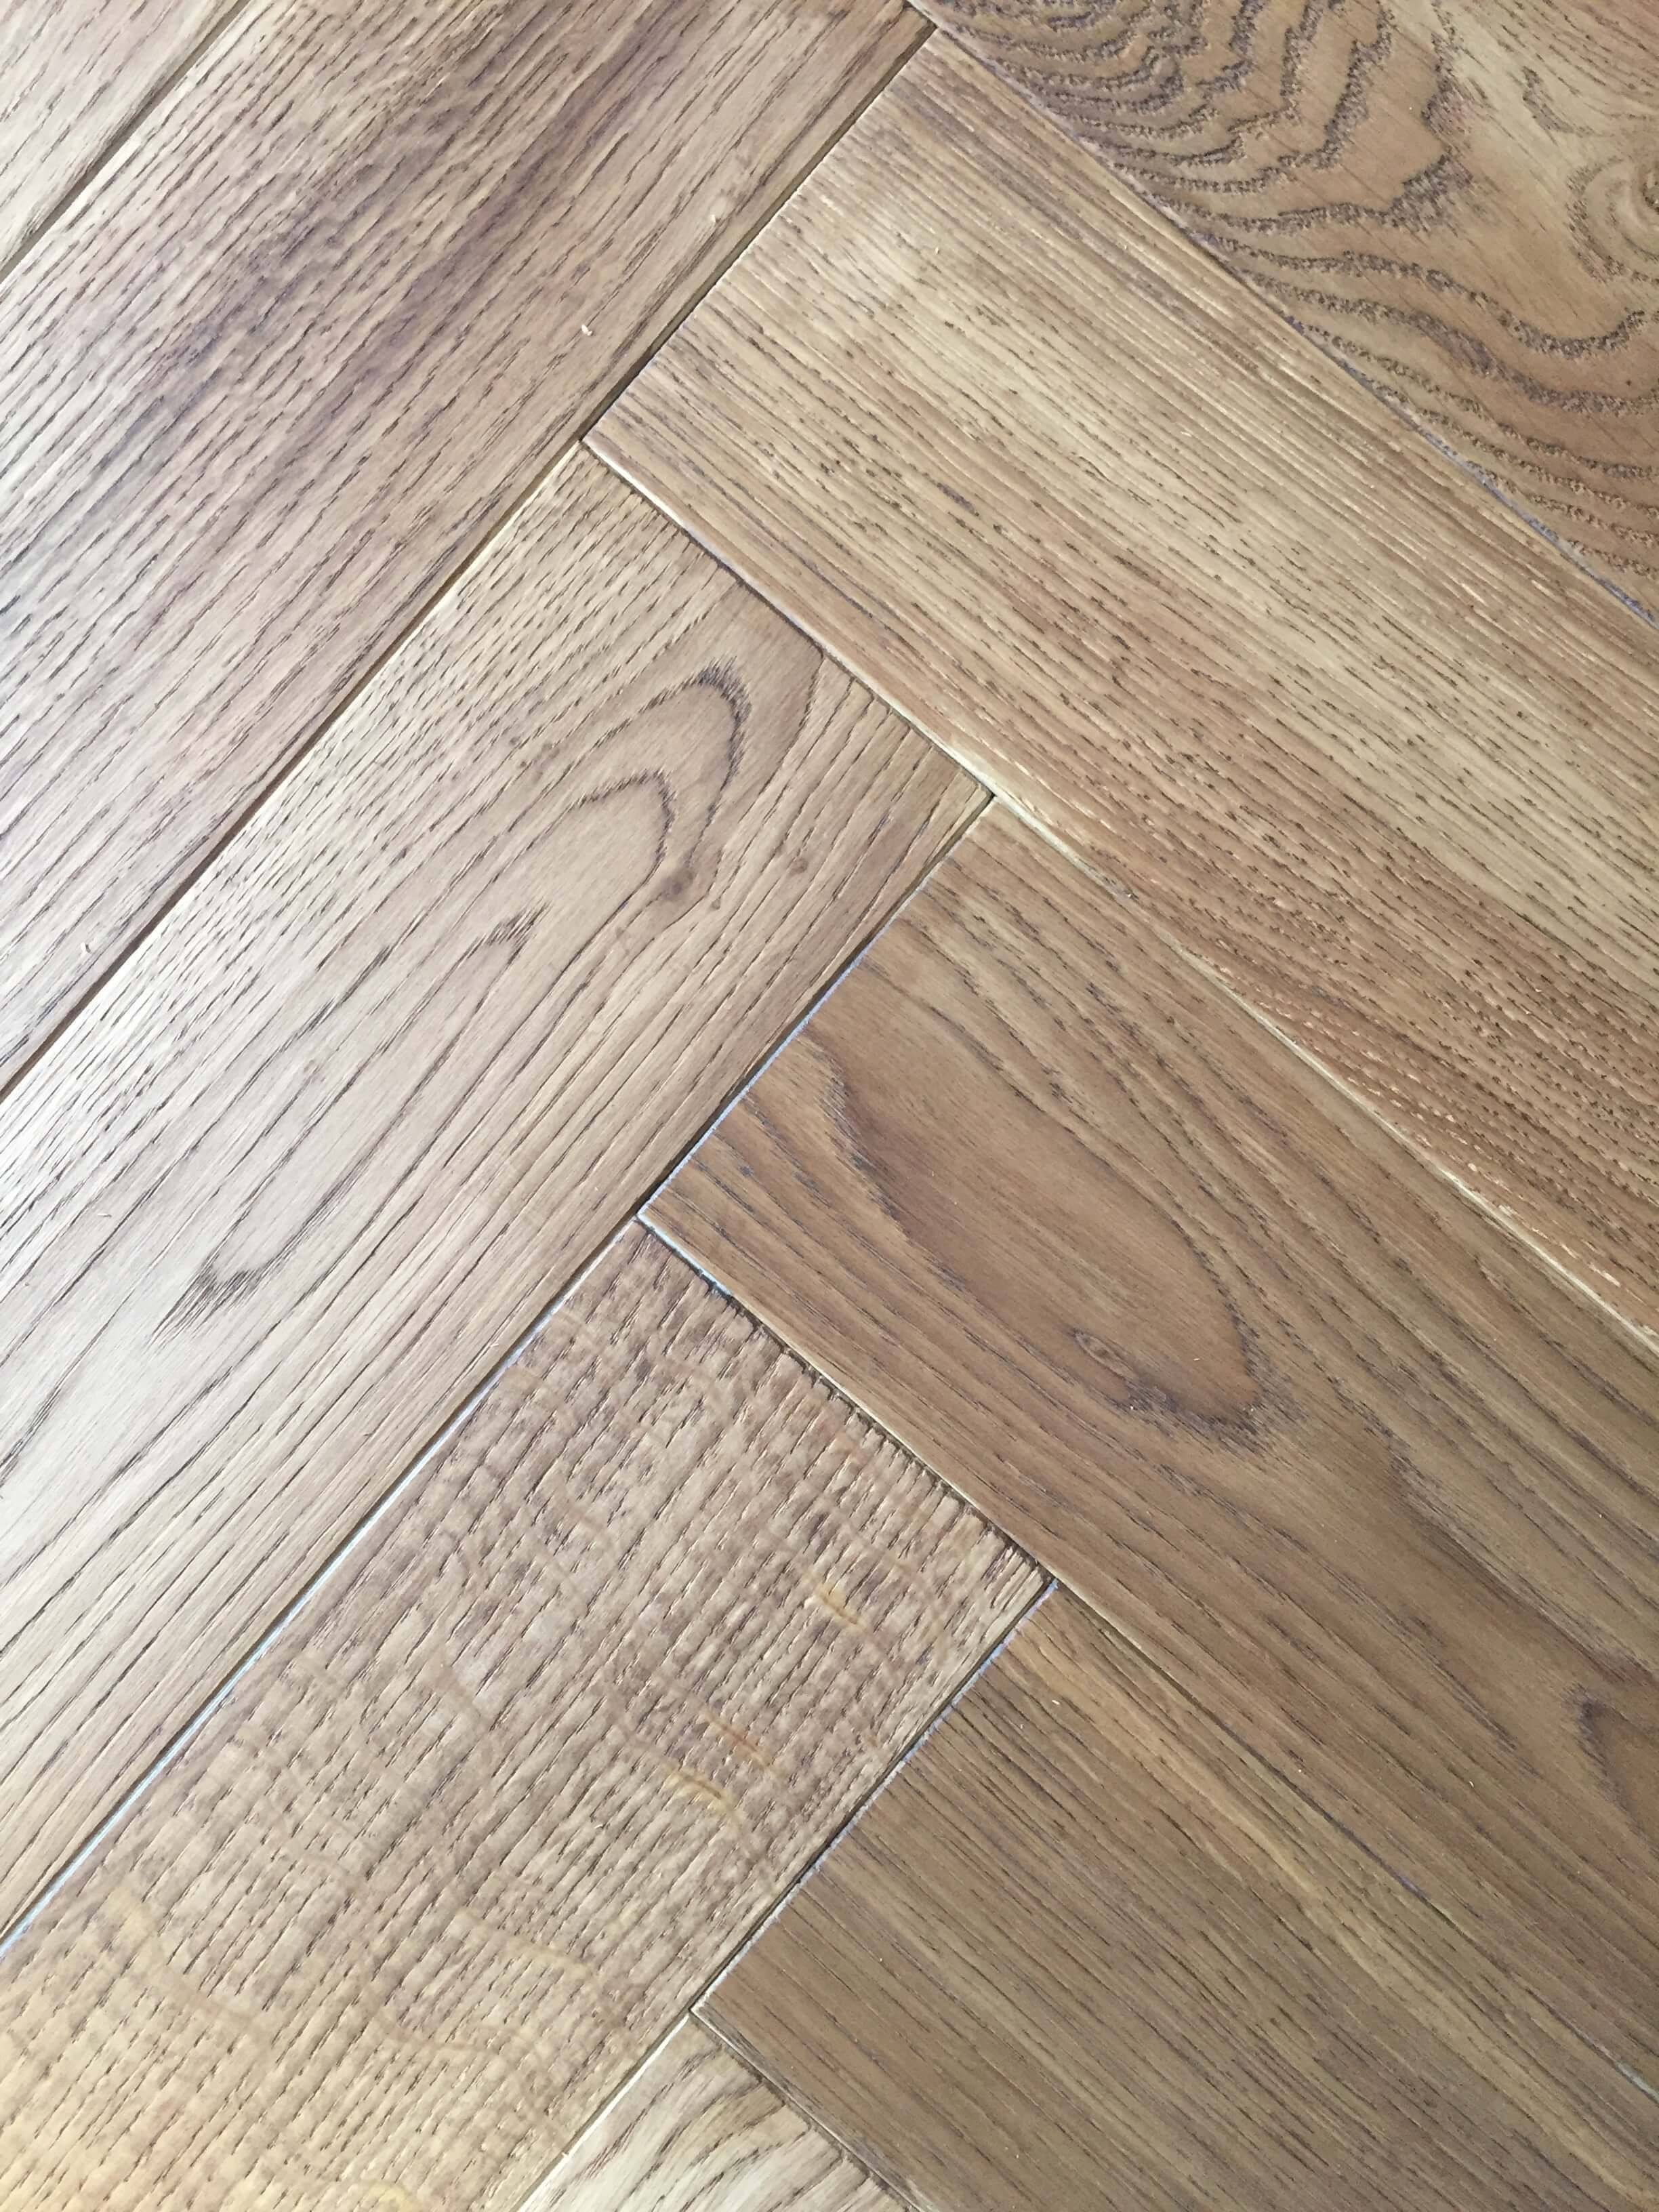 average cost to install hardwood flooring per square foot of prefinished wood flooring how much would it cost to install wood in of hardwood prefinished wood flooring new decorating an open